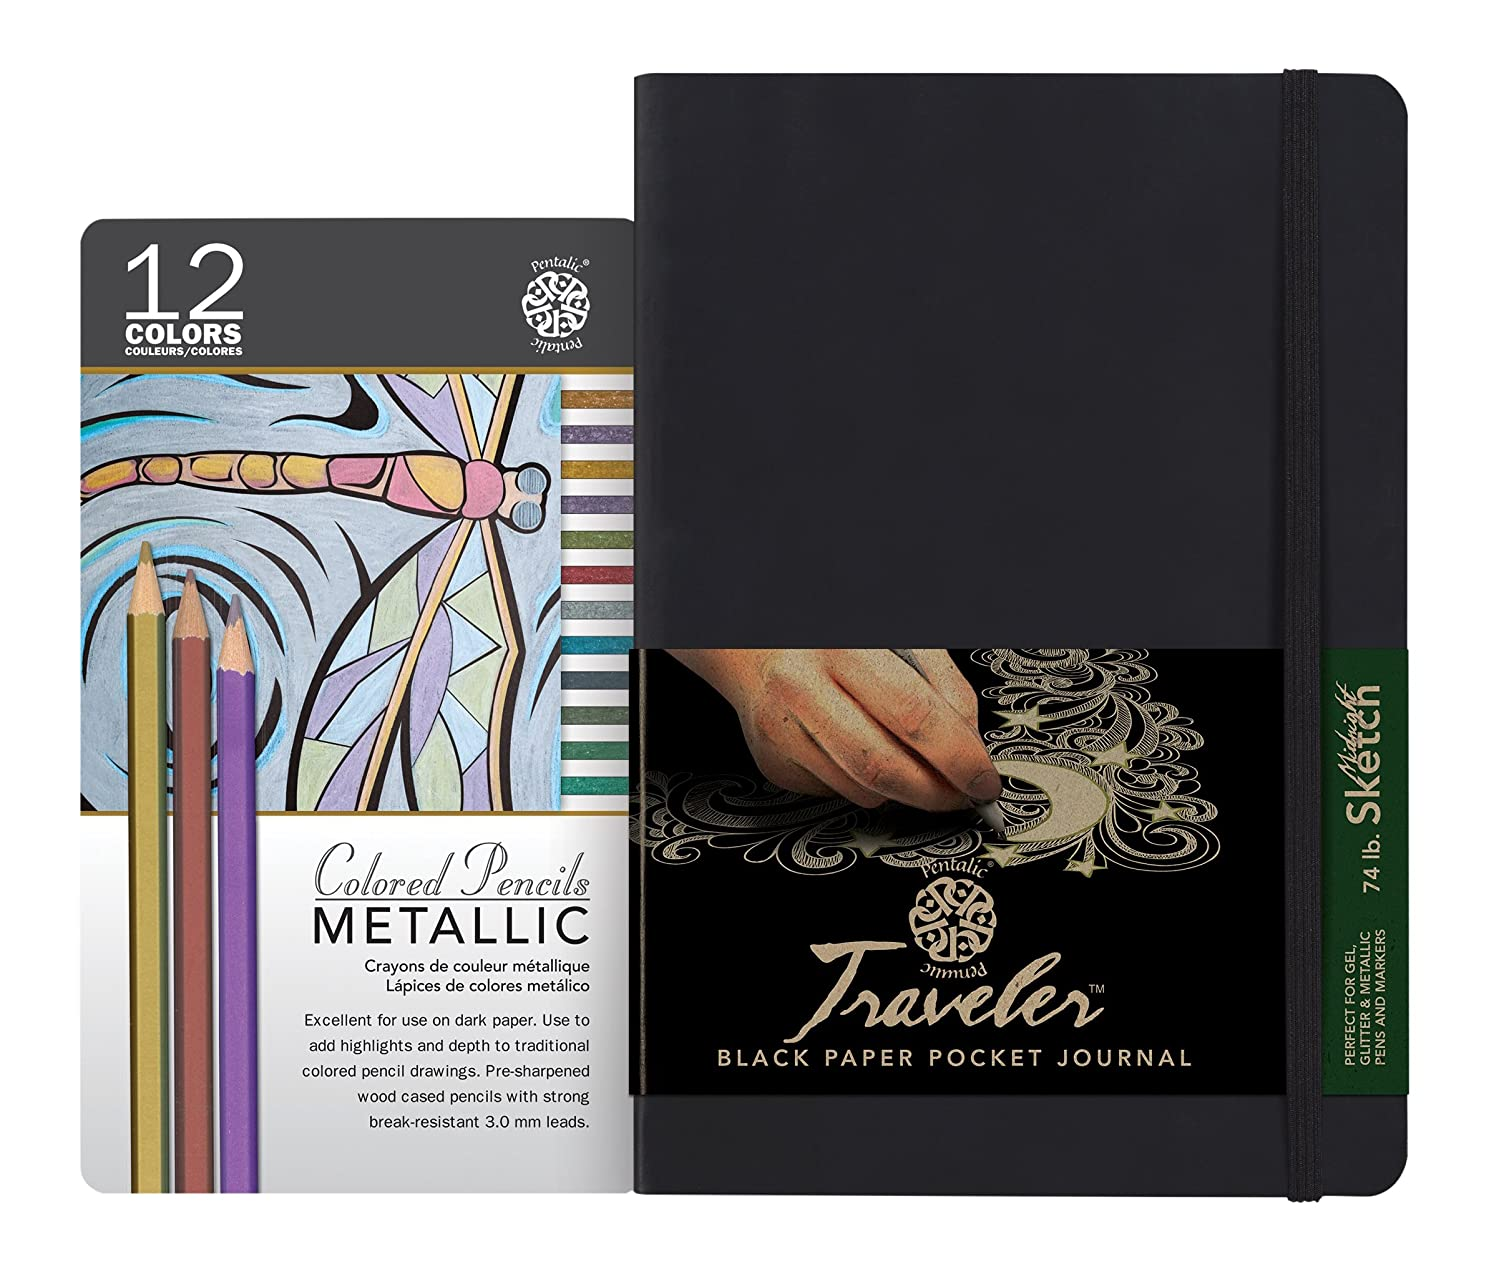 Pentalic Art Pentalic Value Pack, 8-inch-by-6-inch Black Paper Travelers Sketch, 12 Color Metallic Pencil Tin Set, 6-inch x 8-inch Journal